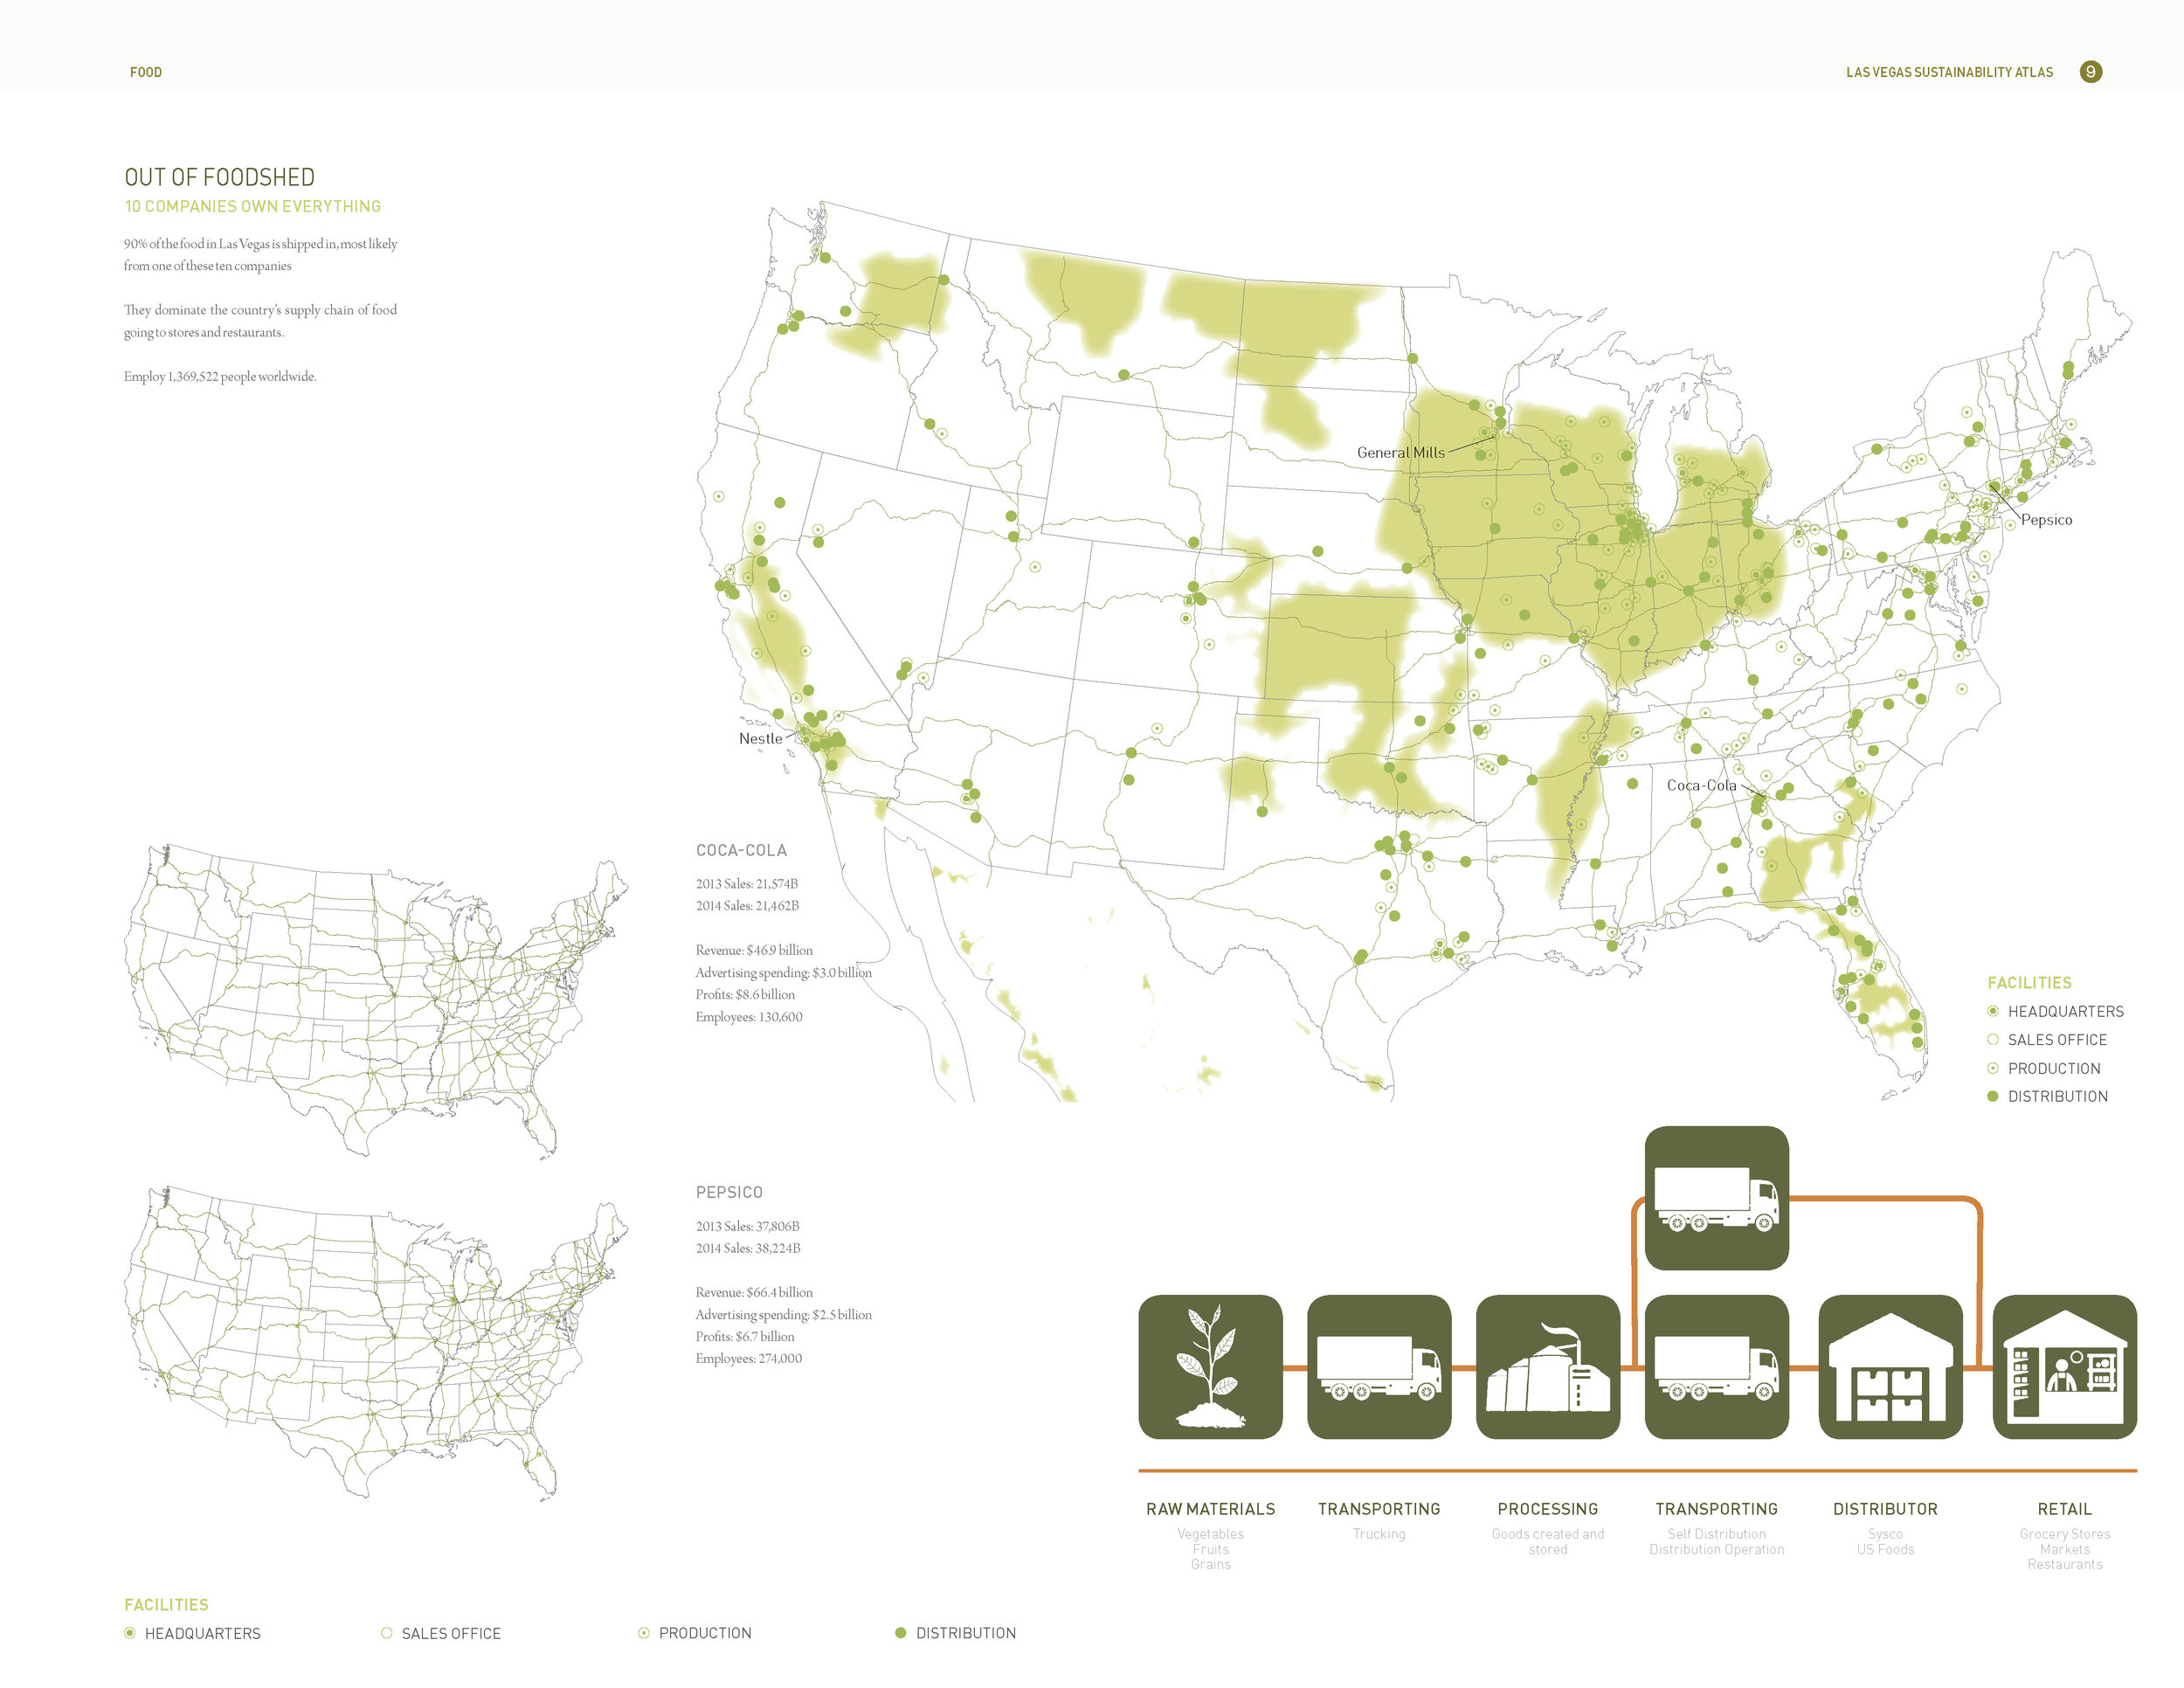 The corporate logistics network over top of the major agricultural growing areas of the United States. Corporations' products correlate with the location of the source foods for their products.